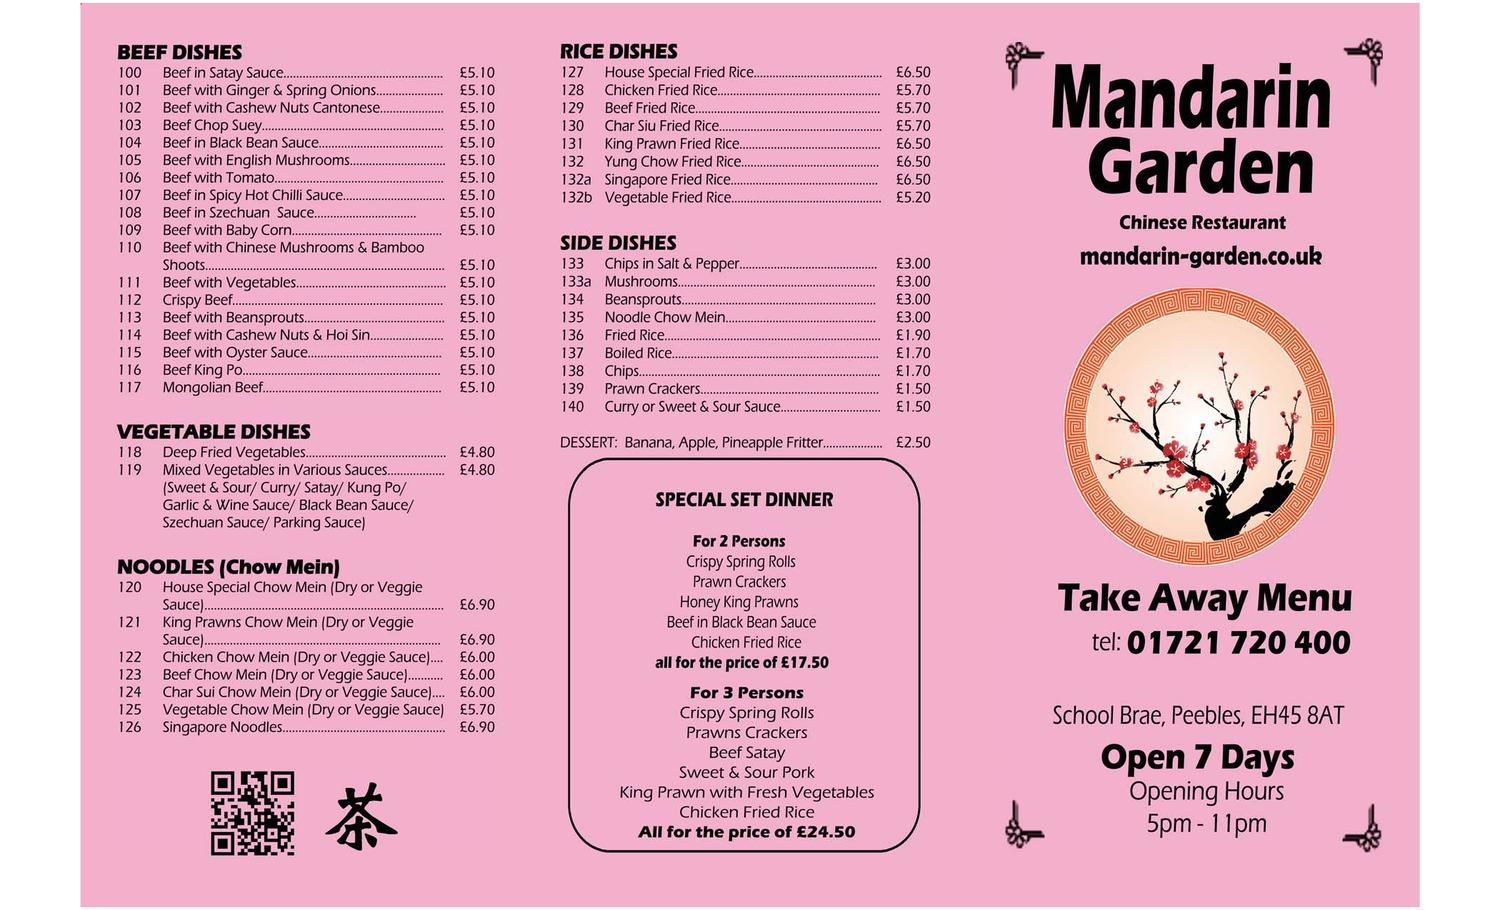 Seductive Mandarin Garden Peebles Takeaway Menu May  By Gil Gillies  Issuu With Hot Garden Metal Gate Besides Garden Bench Wood Furthermore Asda Garden Lights With Charming The Rock Garden Torquay Also Garden Inn Luton In Addition Outdoor Garden Supplies And Garden Art Paintings As Well As Hatton Garden Metals Gold Prices Additionally Covent Garden Tube Station Map From Issuucom With   Hot Mandarin Garden Peebles Takeaway Menu May  By Gil Gillies  Issuu With Charming Garden Metal Gate Besides Garden Bench Wood Furthermore Asda Garden Lights And Seductive The Rock Garden Torquay Also Garden Inn Luton In Addition Outdoor Garden Supplies From Issuucom